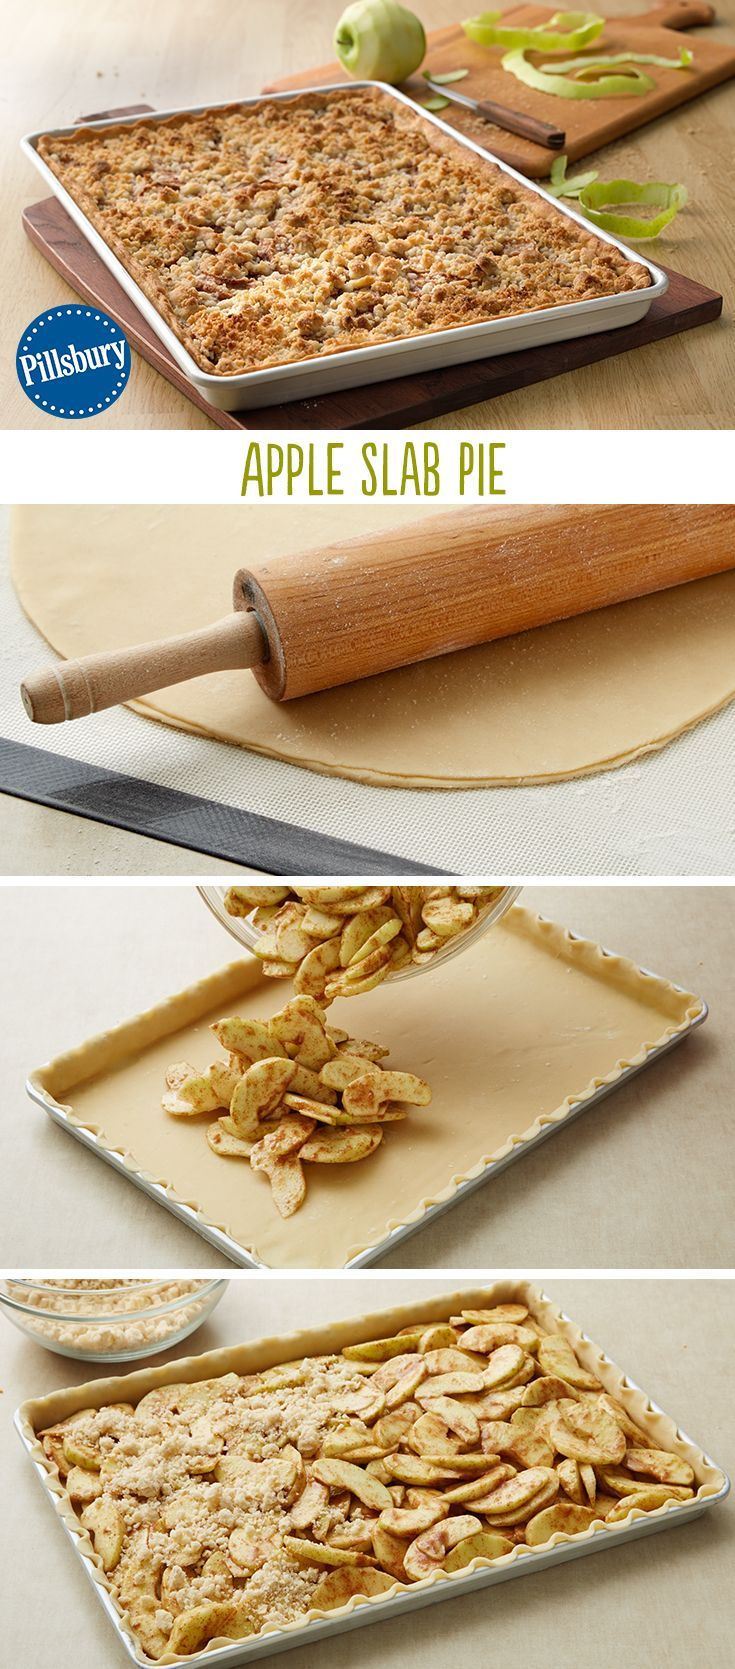 Slab Pie Serve a crowd with this Apple Slab Pie! Loaded with delicious apple and cinnamon flavor and big enough to serve 15 people, this classic streuseled version will delight all your guests. Perfect for the holidays too like Thanksgiving or Christmas.Serve a crowd with this Apple Slab Pie! Loaded with delicious apple and cinnamon flavor an...